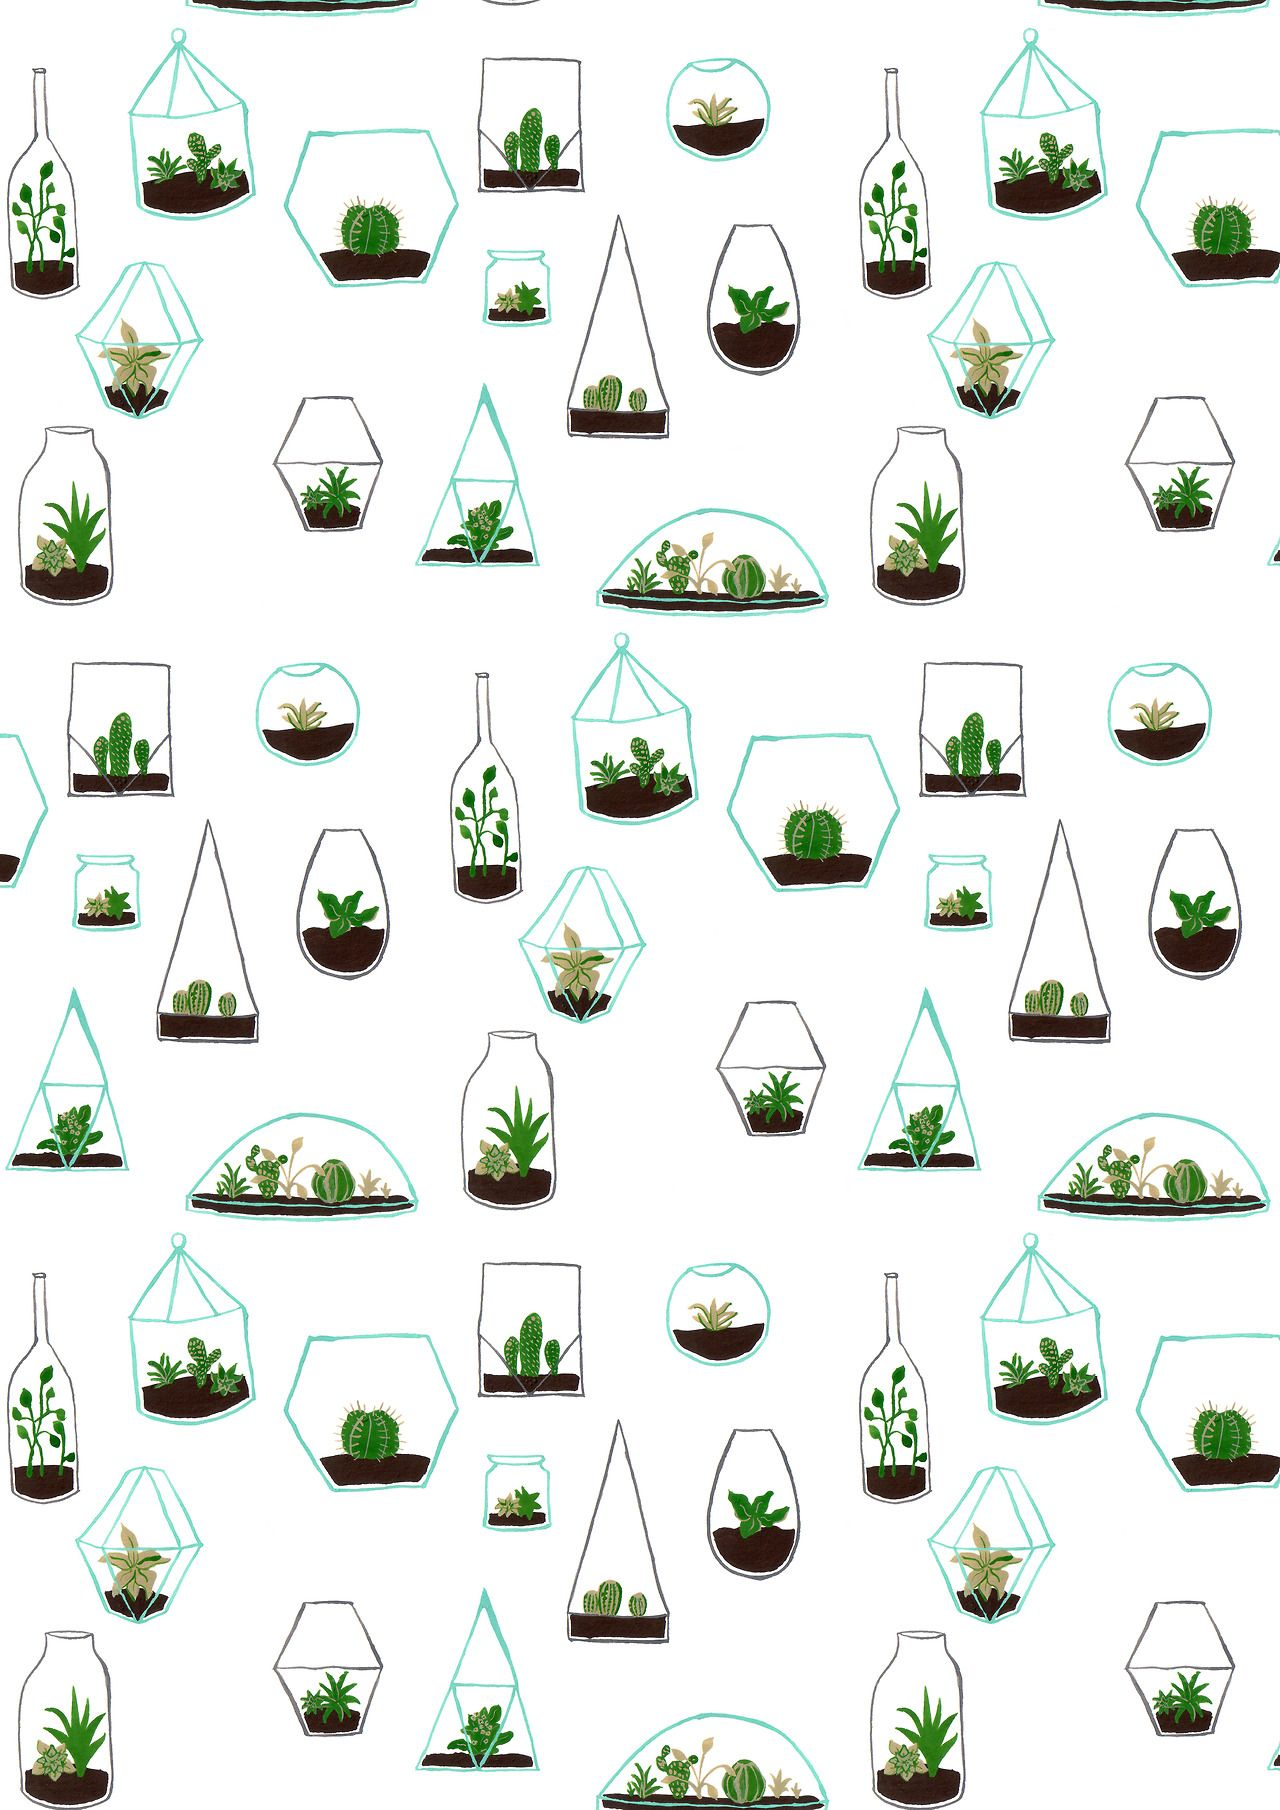 Tumblr iphone wallpaper simple - Simple Terrarium Pattern Drawing Proves You Can Make Cute Illustrative Patterns Our Of Anything Around